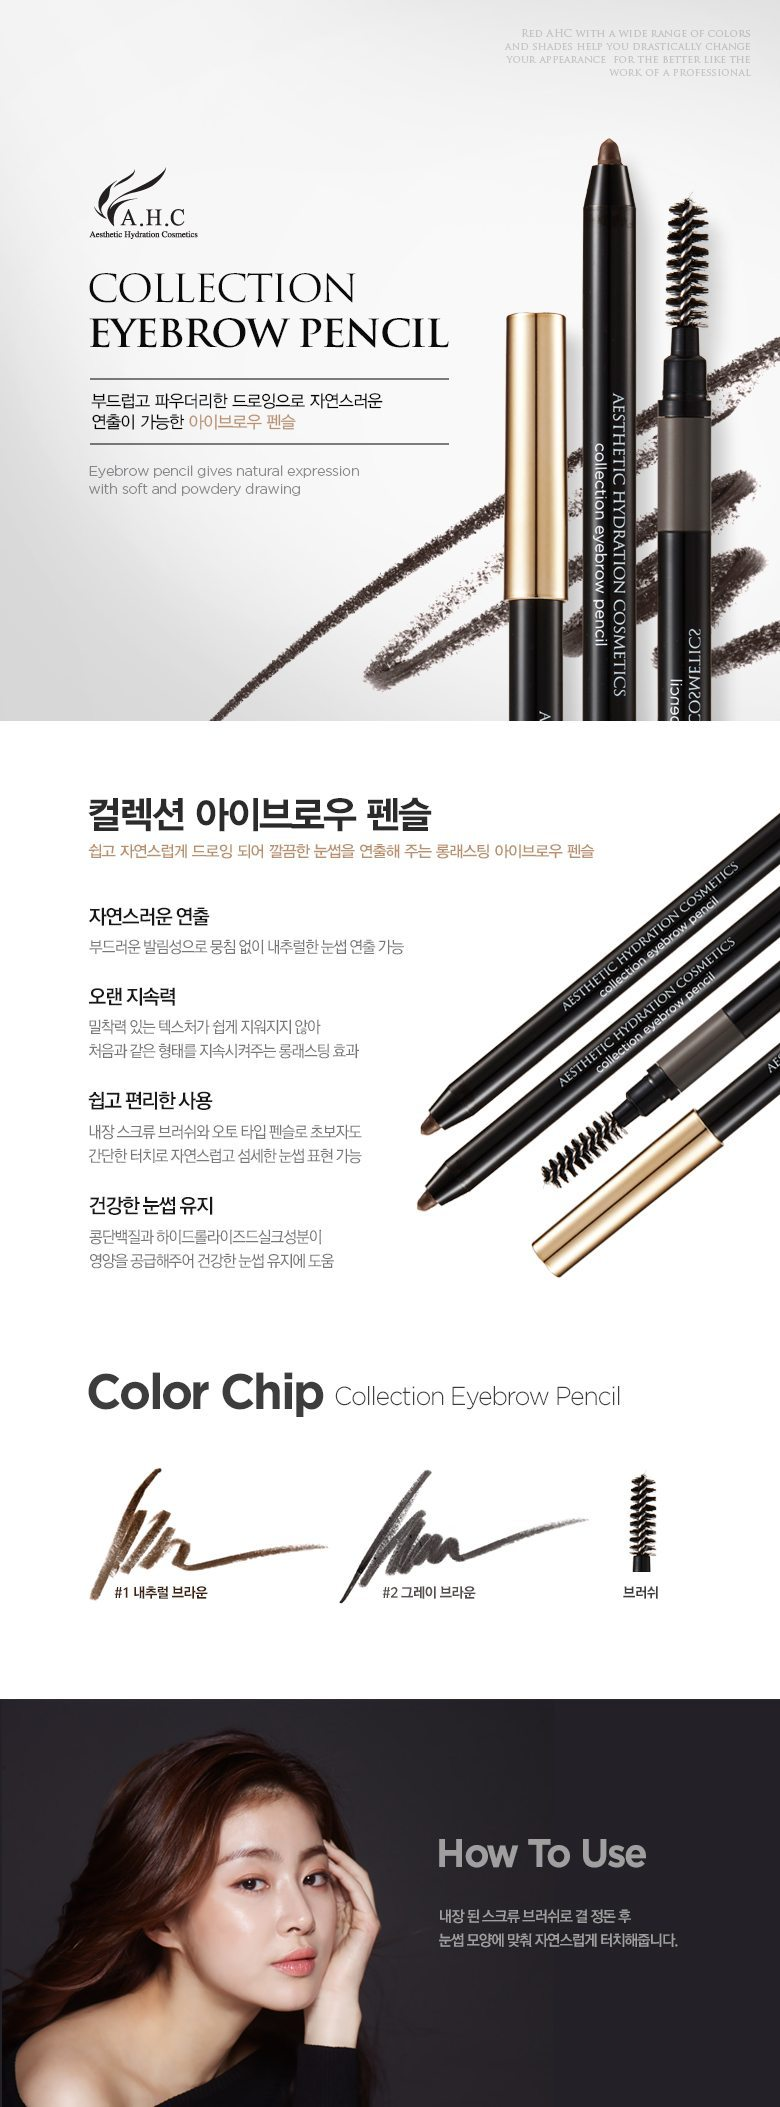 AHC Collection Eyebrow Pencil 9g malaysia singapore indonesia